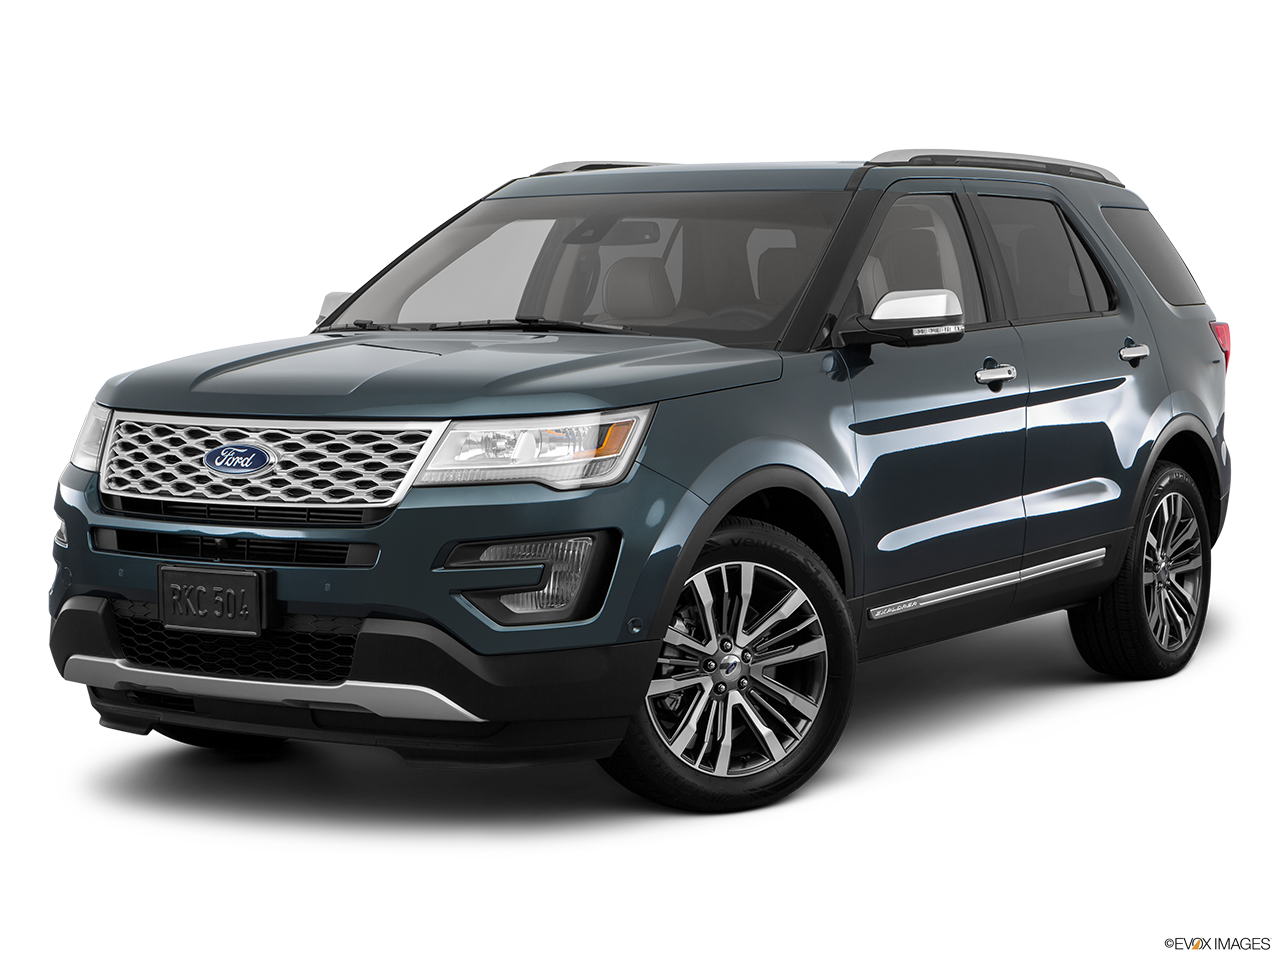 Test Drive A 2017 Ford Explorer at Galpin Ford in Los Angeles